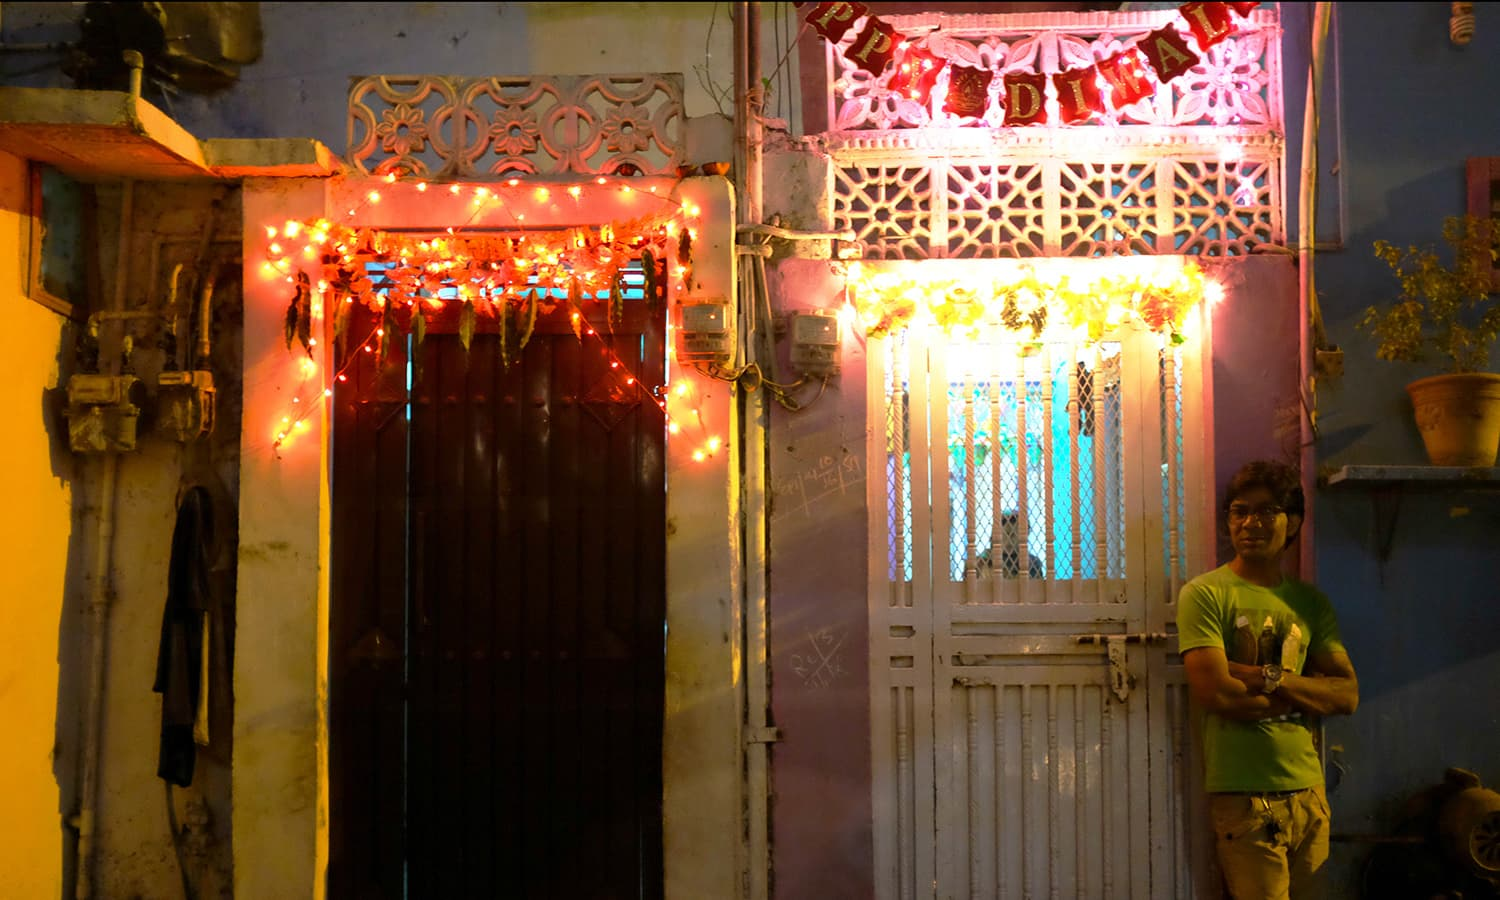 Narayanpura, another neighbourhood housing members of the Hindu community, was not far behind in the festivities.